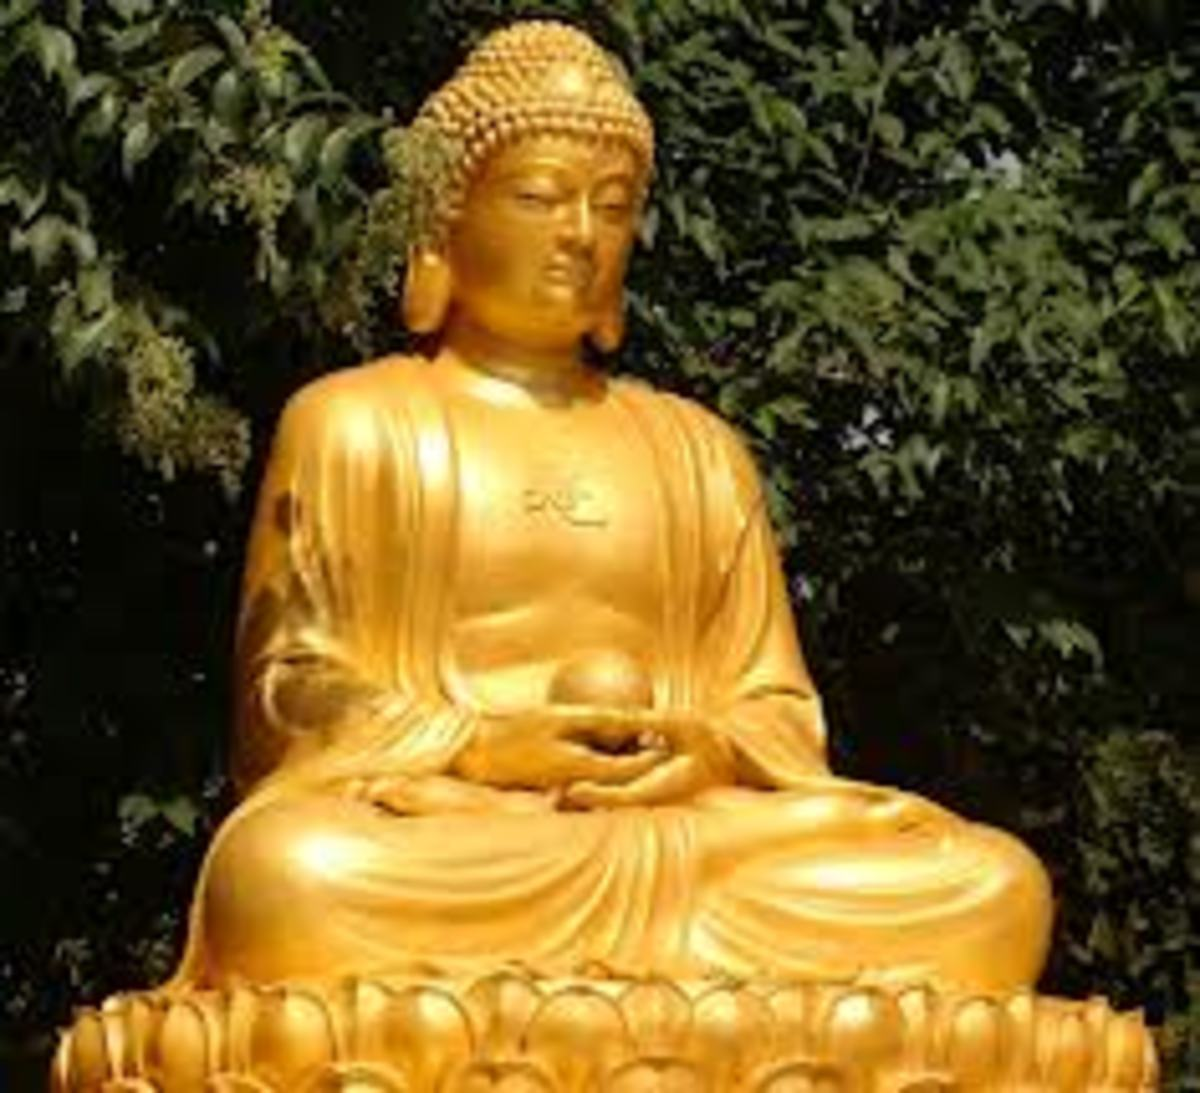 There are many types of Buddha statue to choose from, but what they have in common is that they all seem to be peaceful as if they have found something important, perhaps the meaning of life.